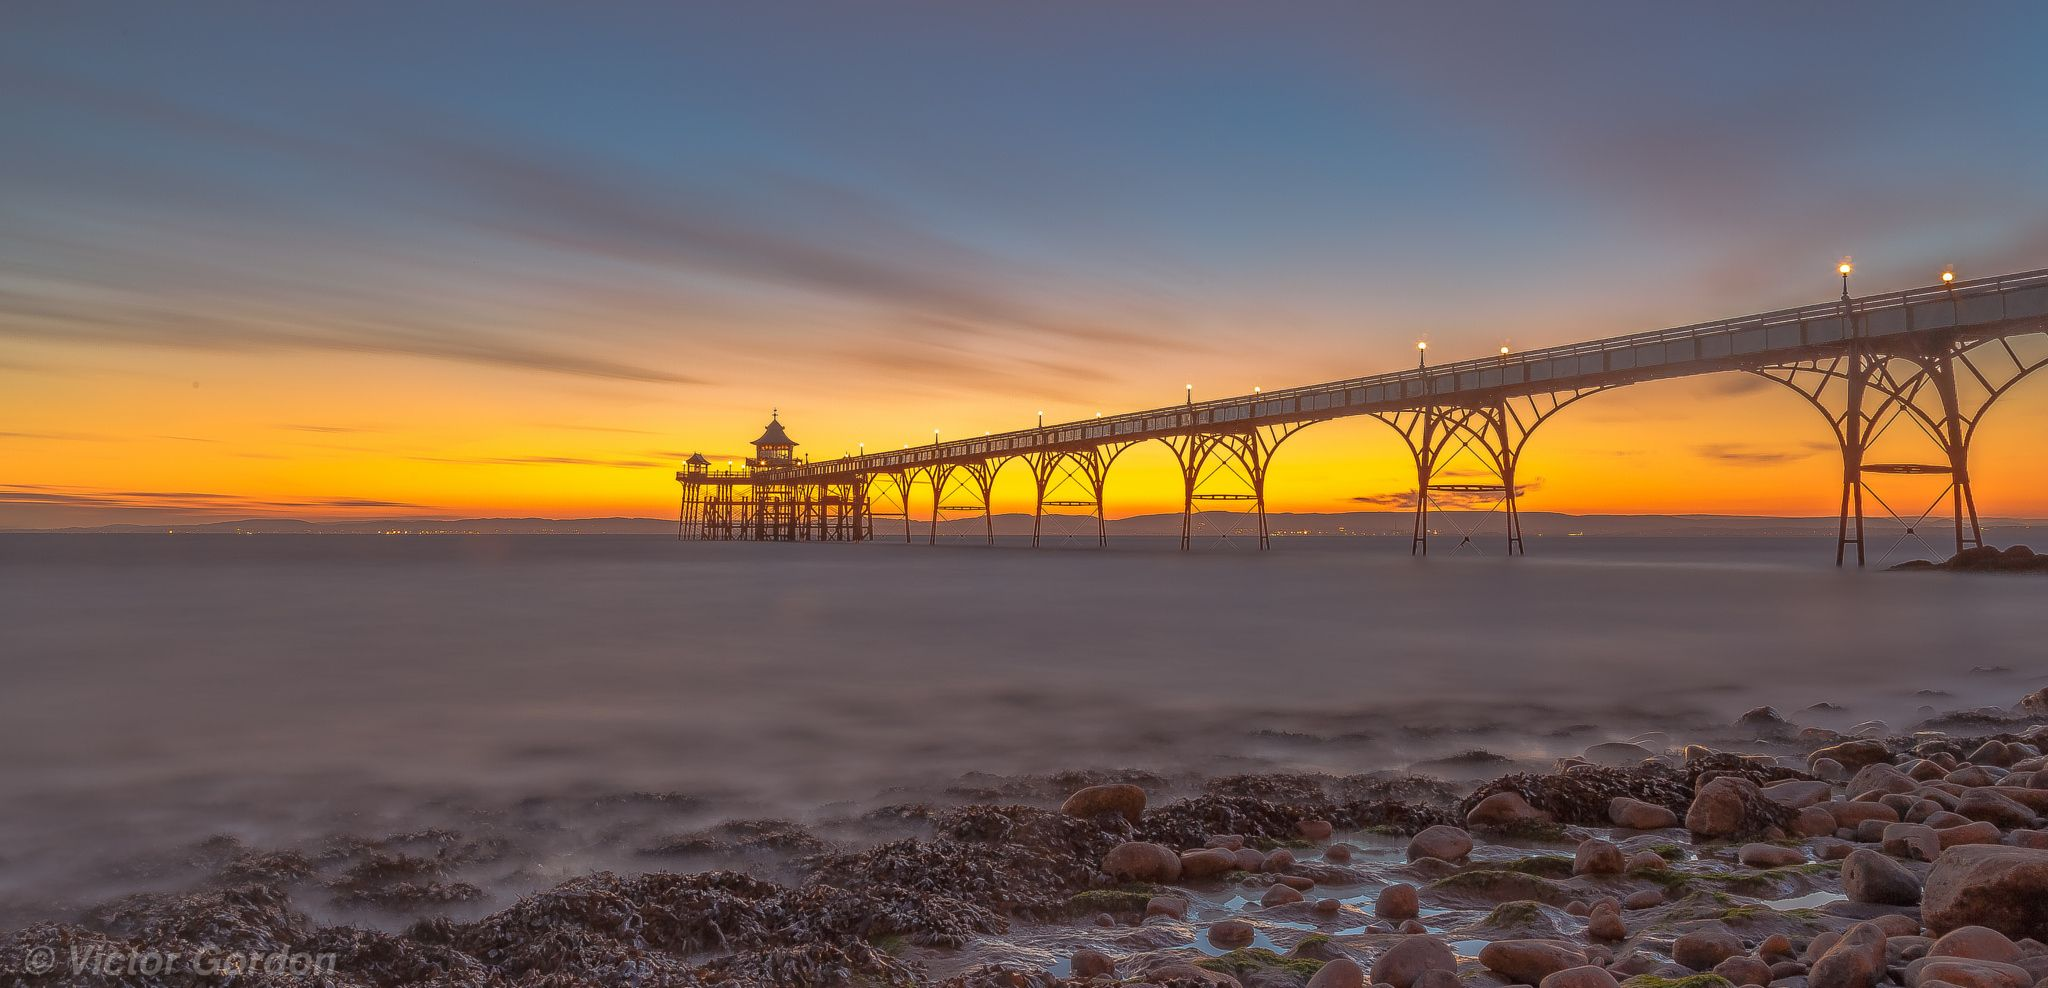 Clevedon Pier II by Victor Gordon on 500px